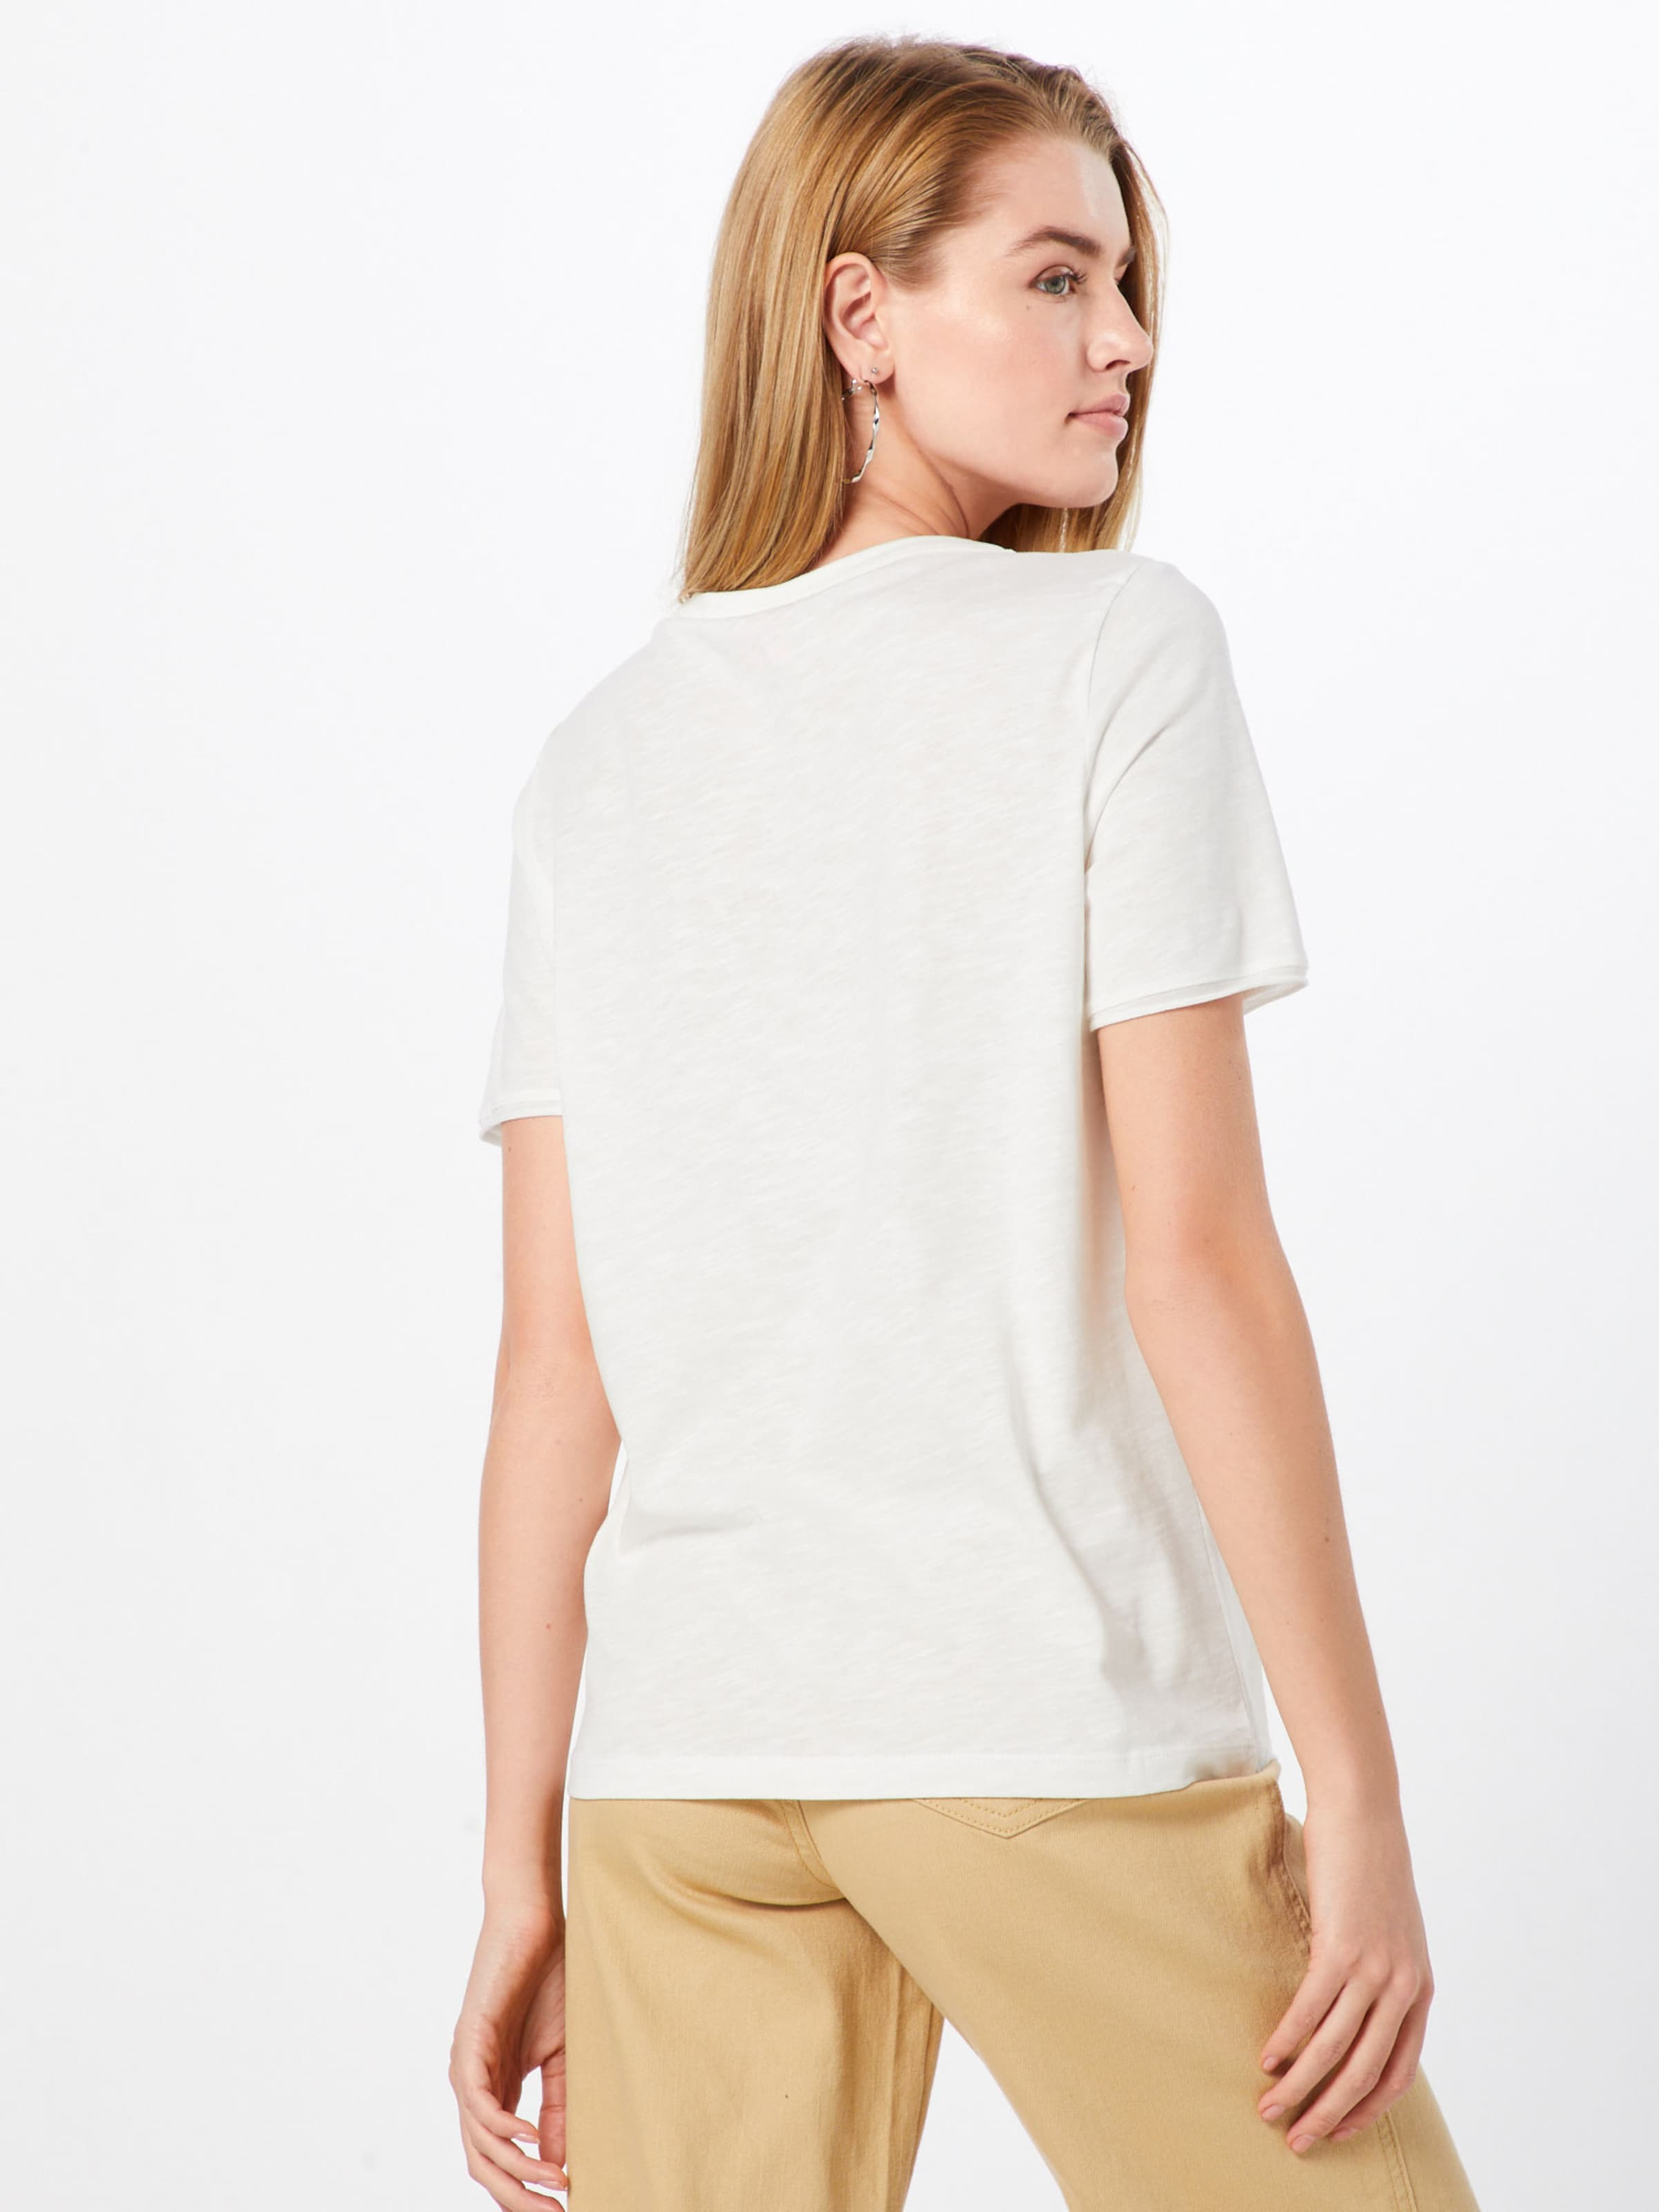 Tailor Tom En T Blanc shirt JlFTKc1